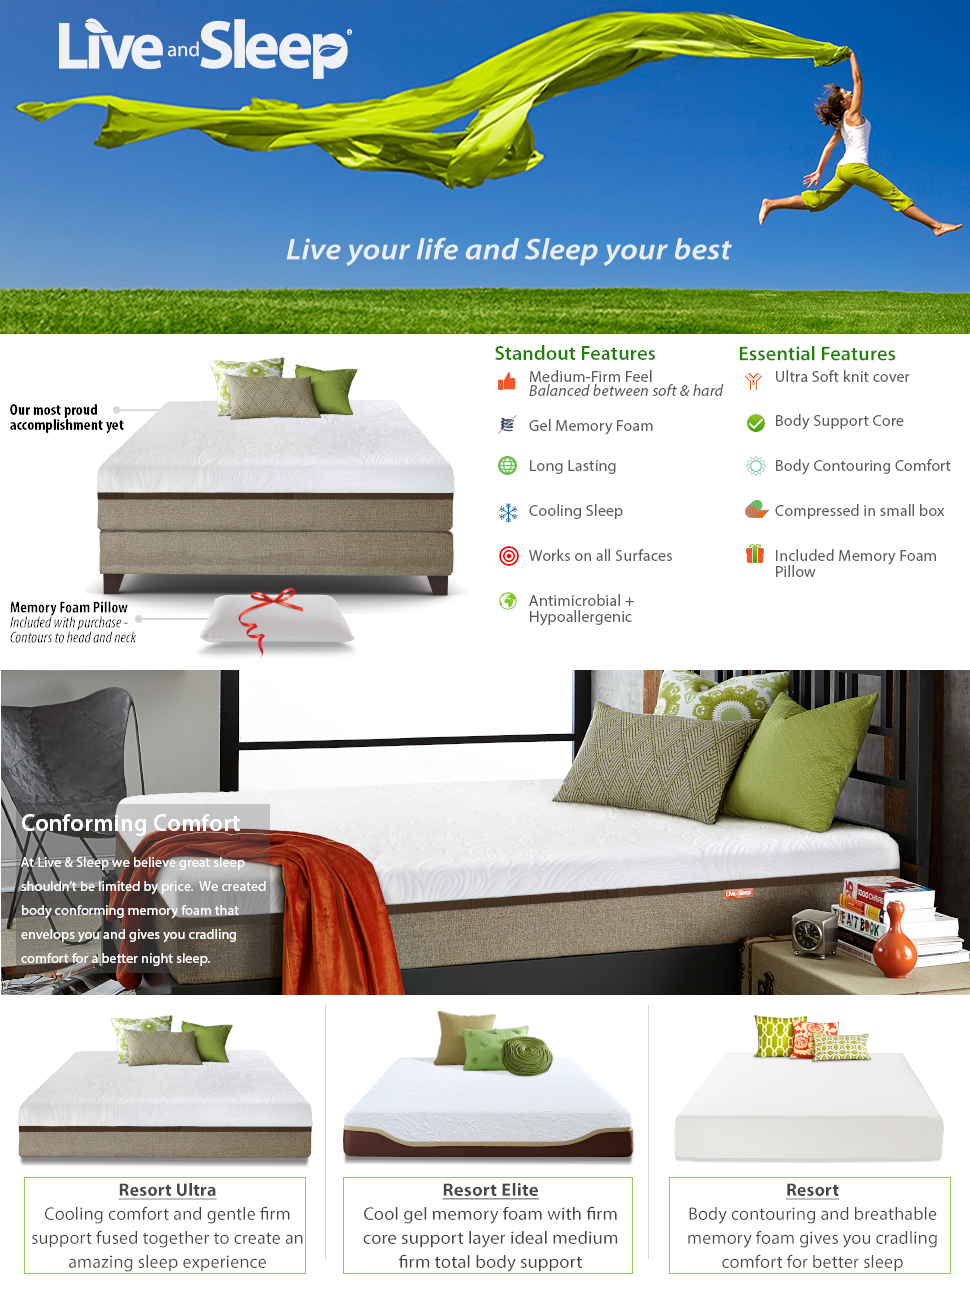 amazon com live and sleep resort ultra full double size 12 inch